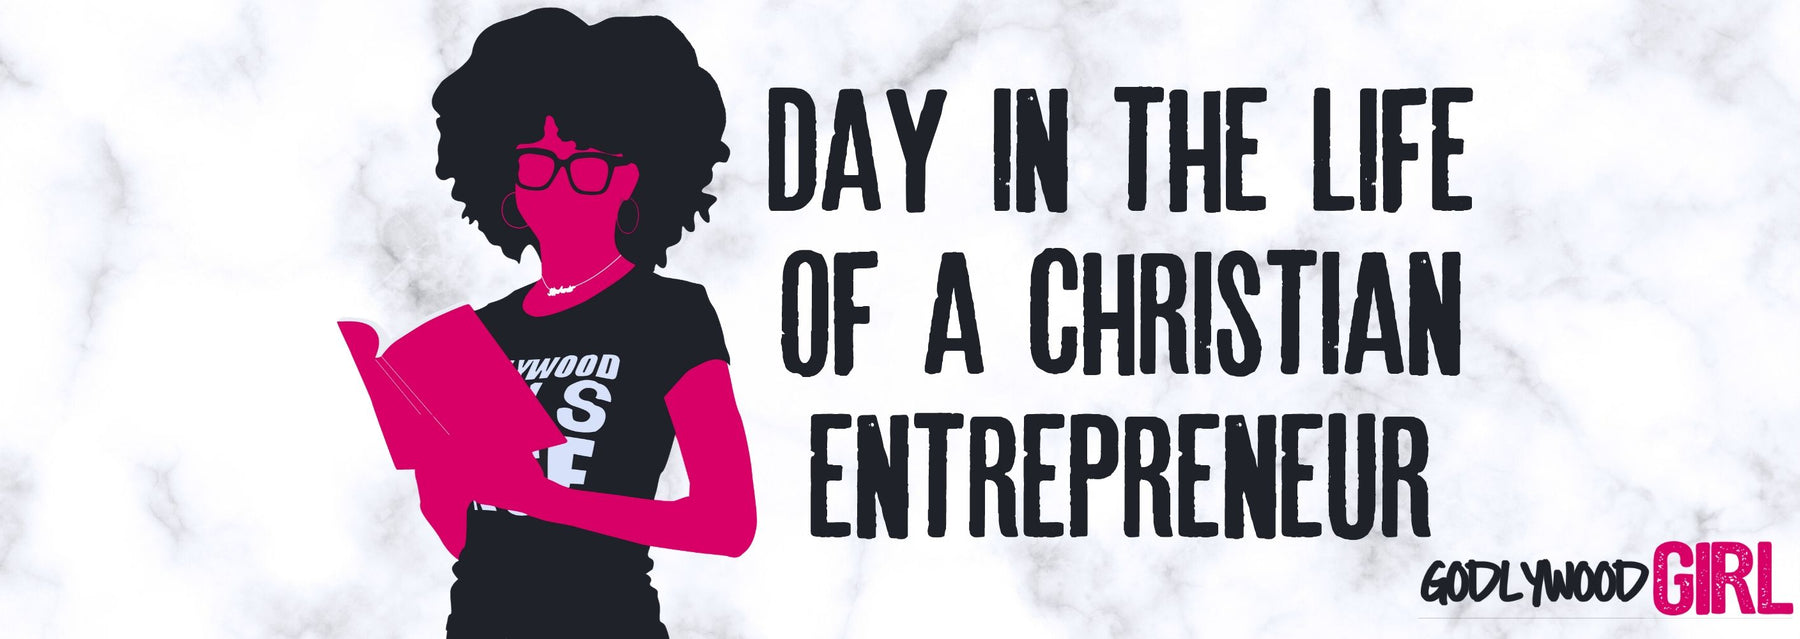 Day In The Life Of A Christian Entrepreneur Ep.22 | I'm Launching A New Sales Funnel (Week In The Life)